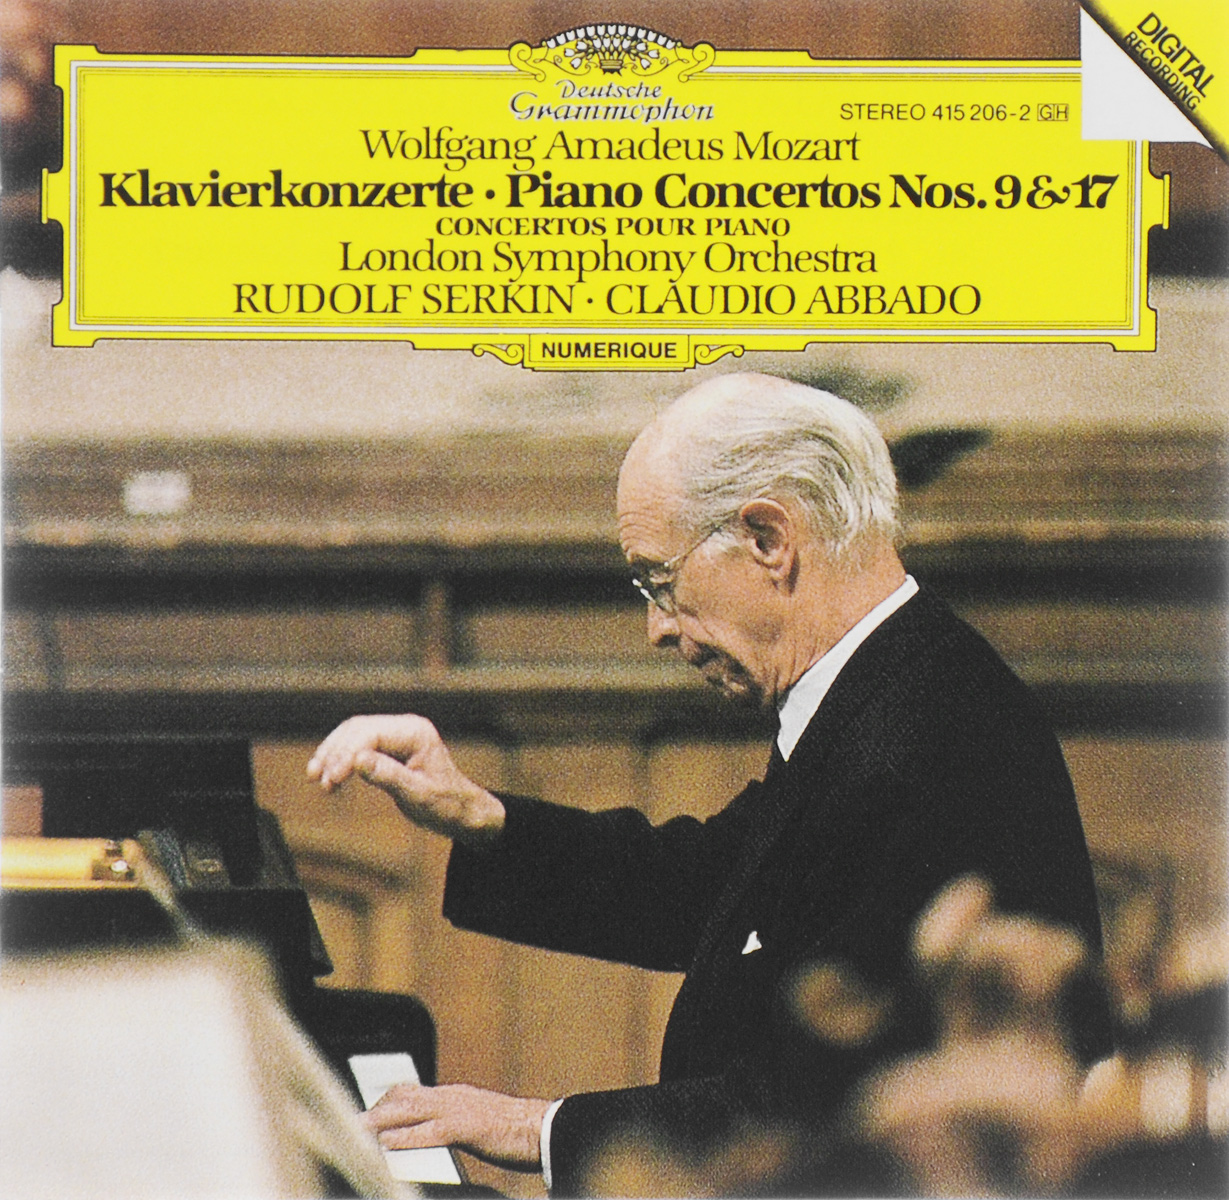 The London Symphony Orchestra,Рудольф Серкин,Клаудио Аббадо Rudolf Serkin, Claudio Abbado. Wolfgang Amadeus Mozart. Klavierkonzerte